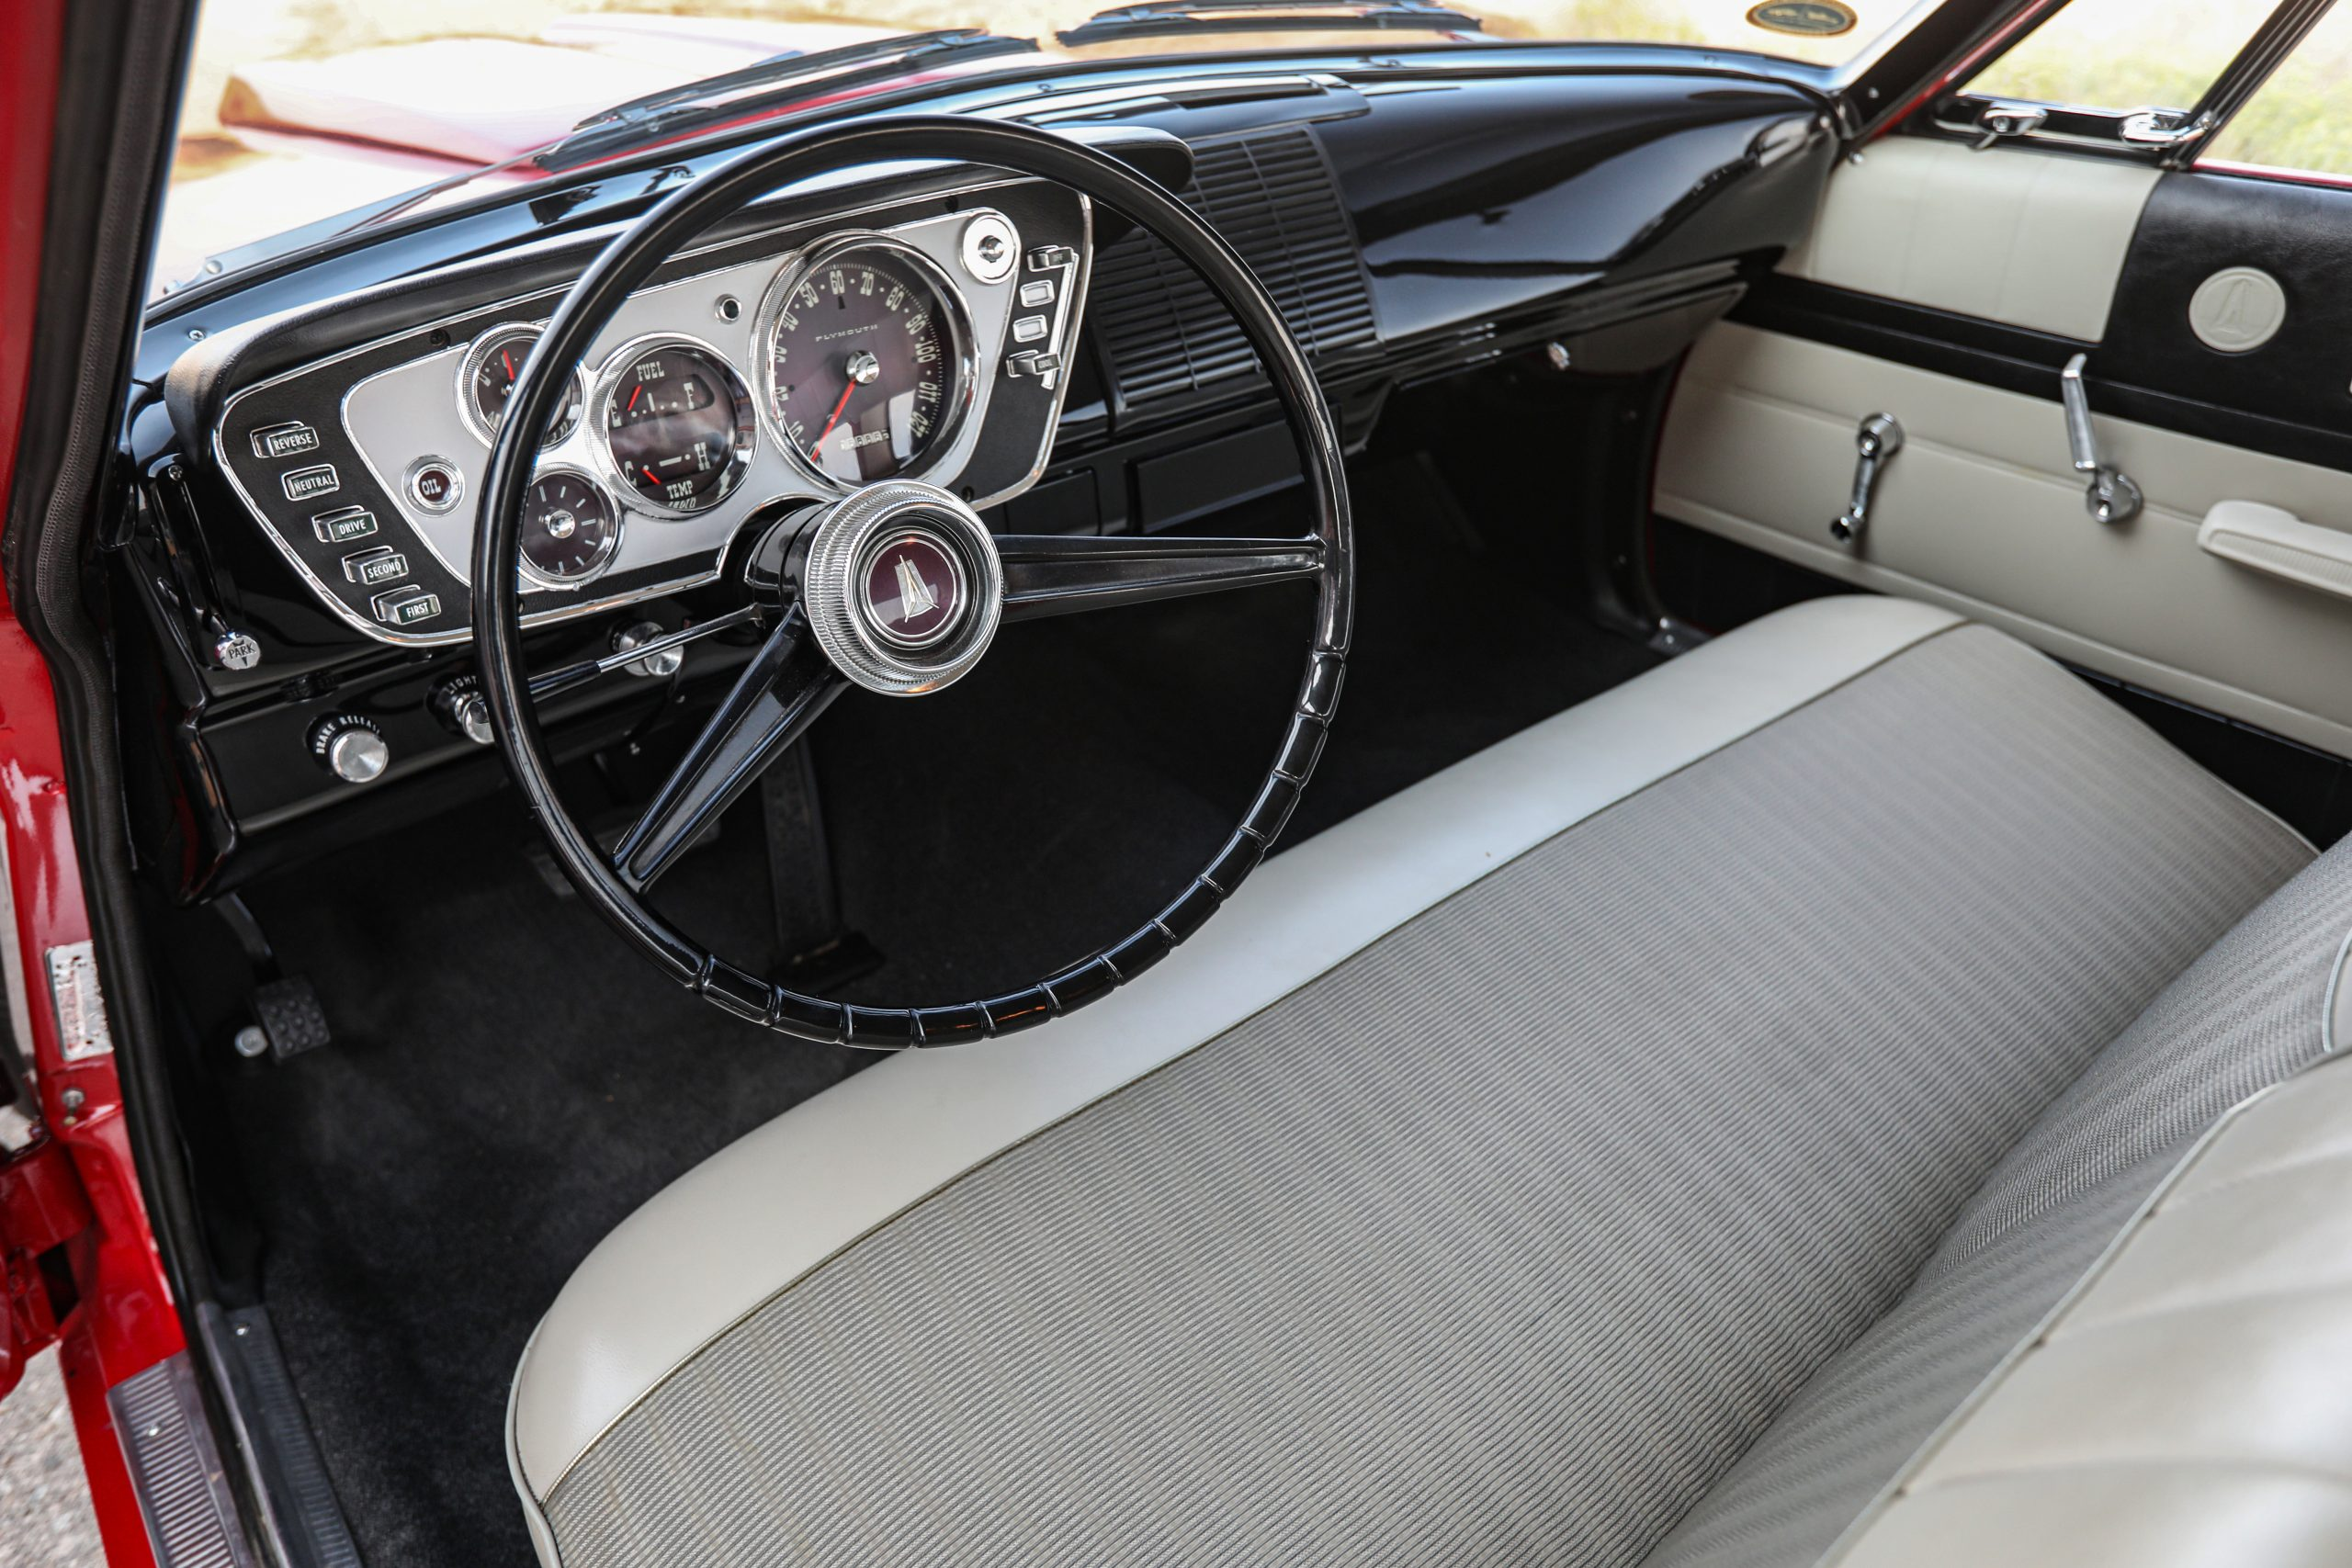 1963 Plymouth 426 Max Wedge lightweight interior front seats